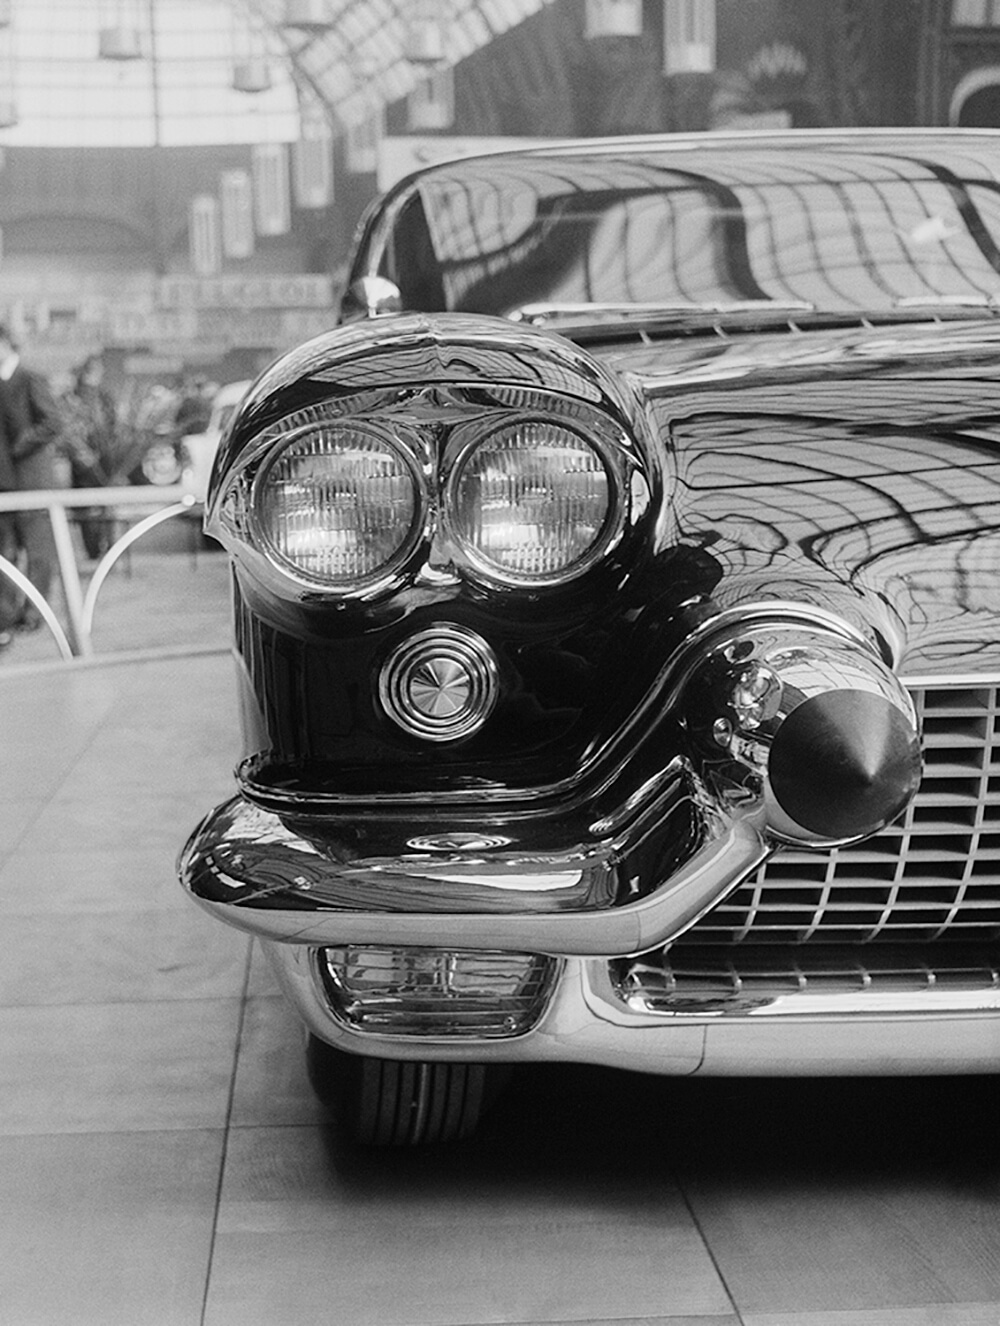 Cadillac from Transport fine art photography